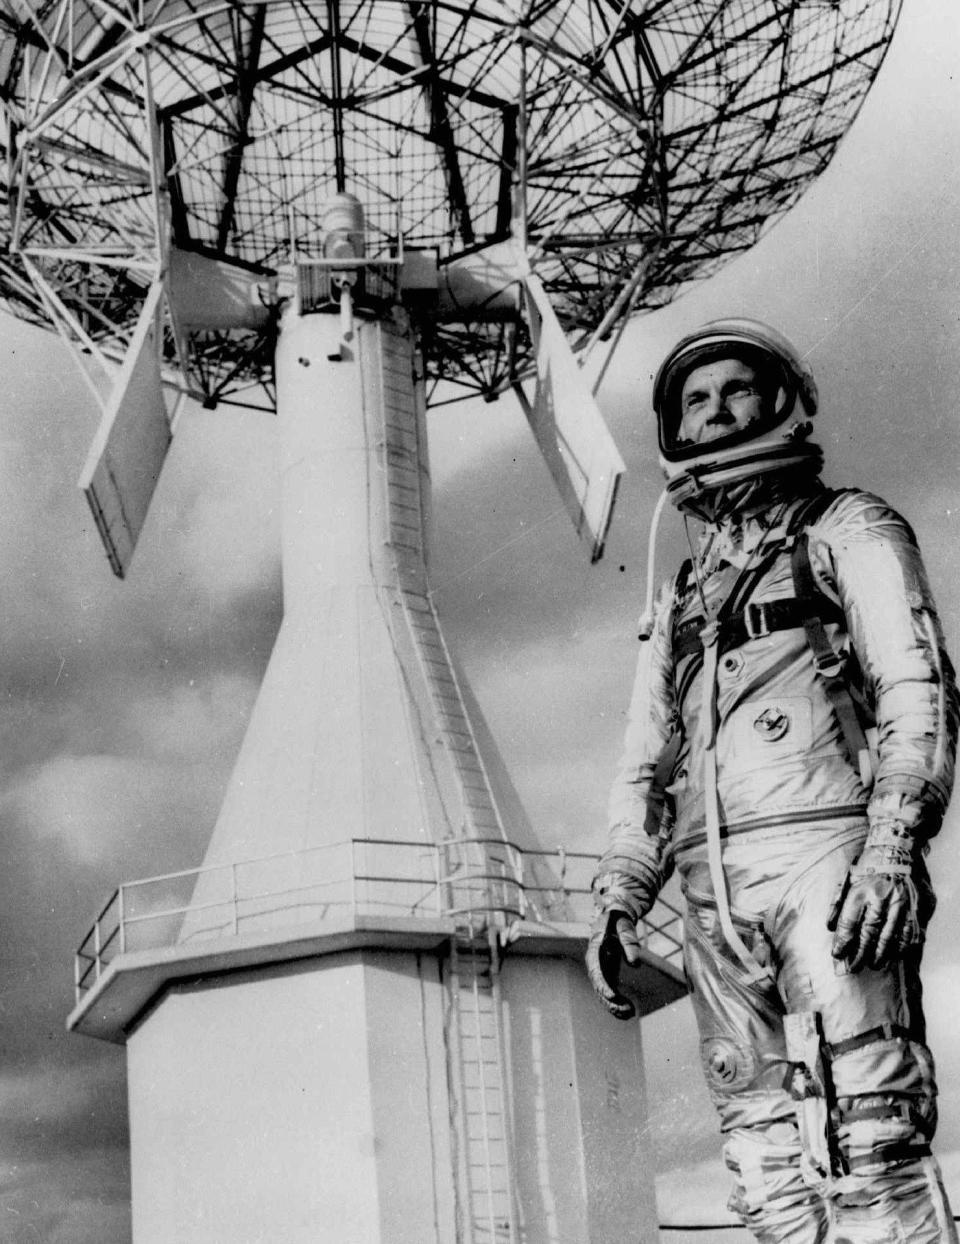 FILE- In this June 18, 1963, file photo, astronaut John Glenn, the first American to orbit the earth, poses before a Project Mercury tracking station at Cape Canaveral, Fla. Glenn's birthplace and childhood hometown in Ohio are celebrating what would have been the history-making astronaut and U.S. senator's 100th birthday with a three-day festival from July 16 through July 18, 2021. (AP Photo, File)